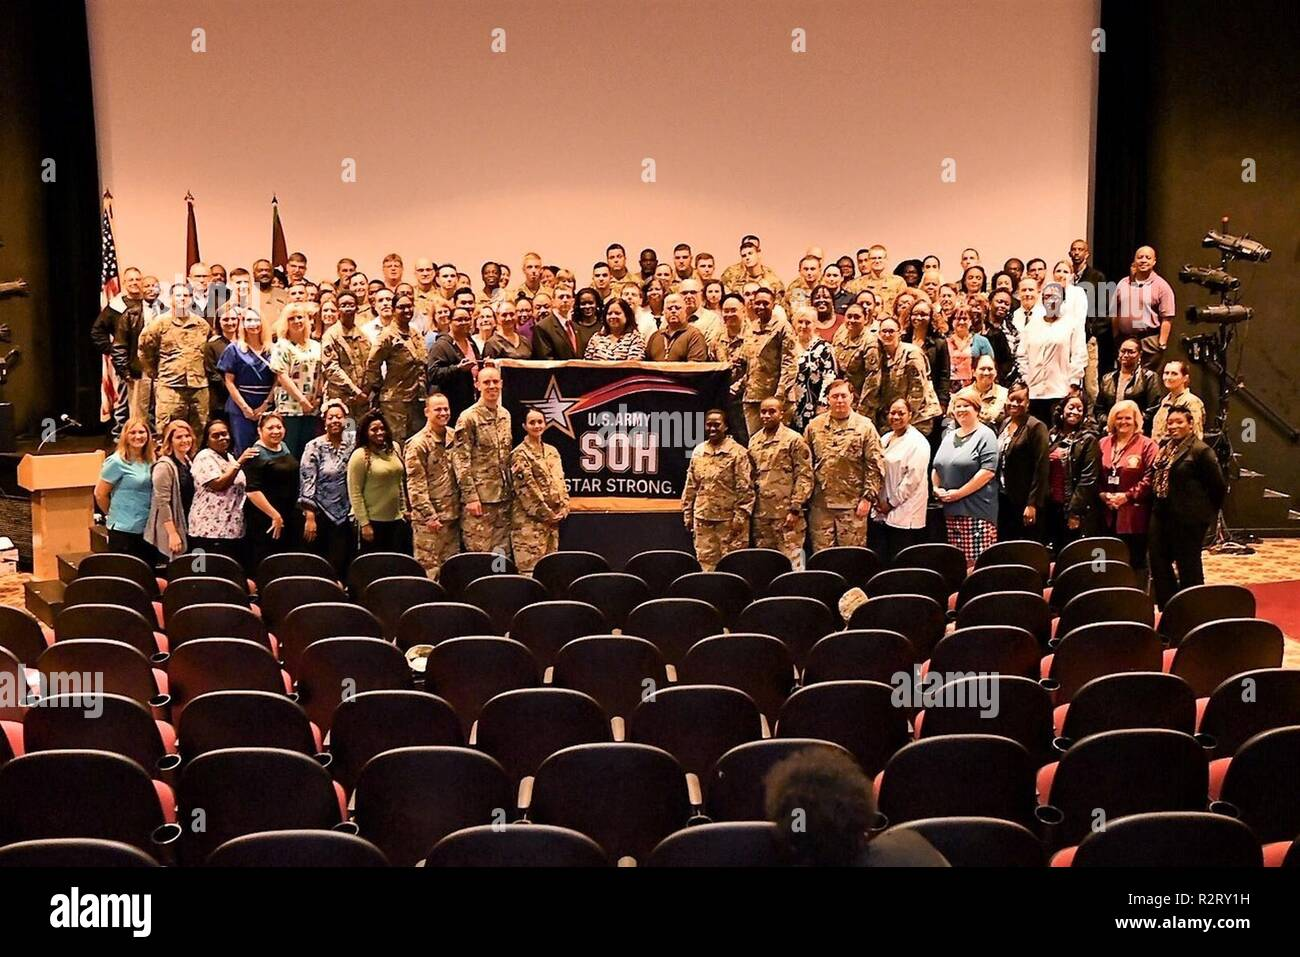 - Brig. Gen. Telita Crosland, Regional Health Command-Atlantic, commanding general stands with the Kenner Army Health Clinic team with the Army Safety and Occupational Health Star flag, which was presented during Commander's Call at the Fort Lee Theater Nov. 8. - Stock Image